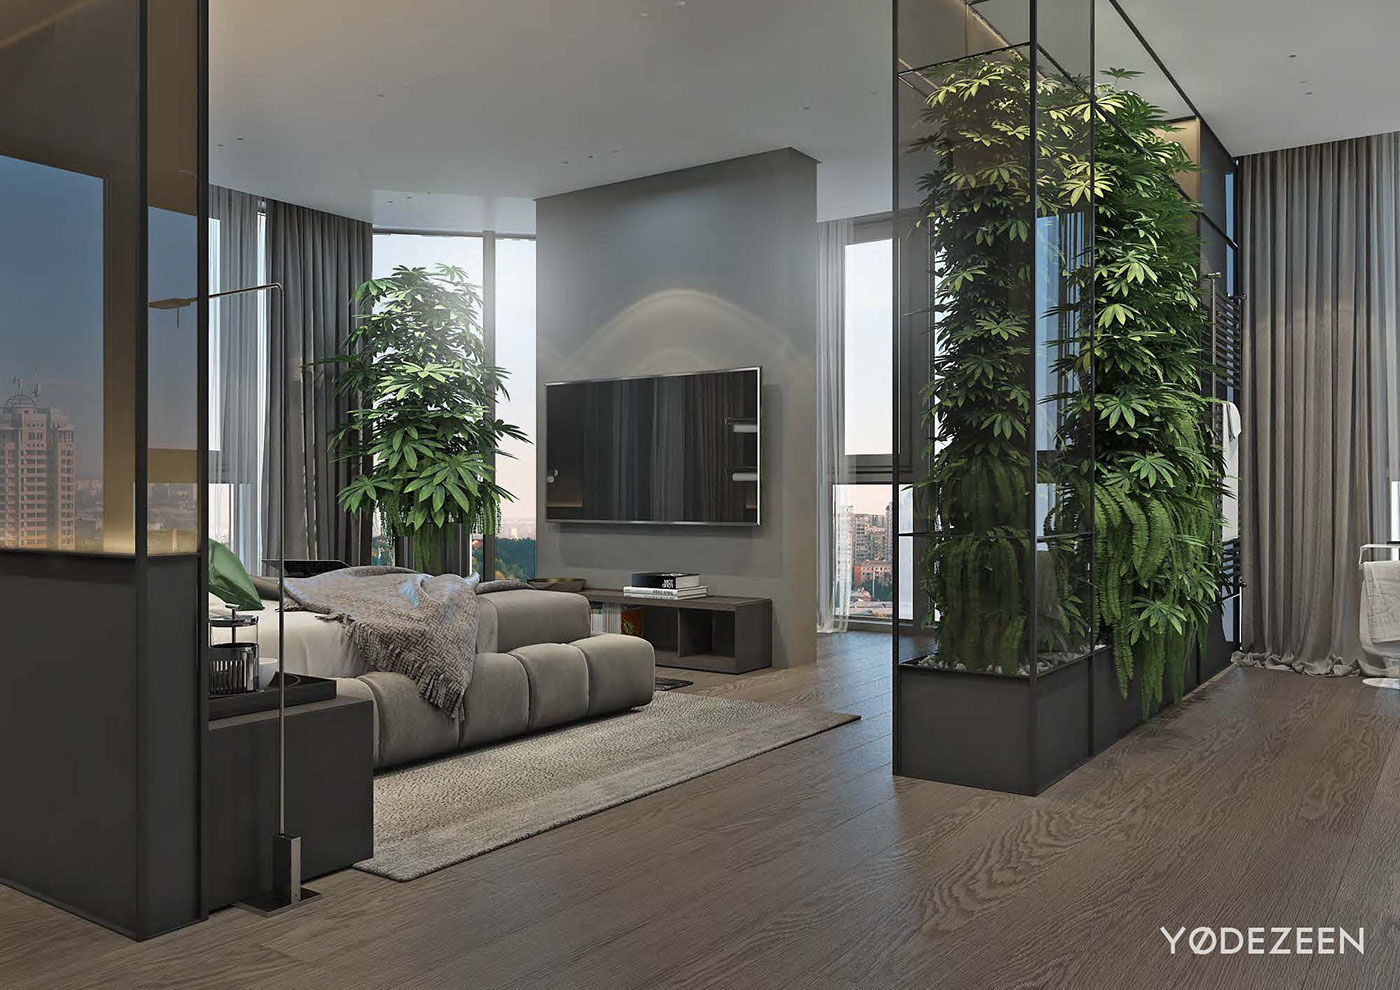 Luxurious Apartment Redefines The Term 'Urban Jungle' images 20